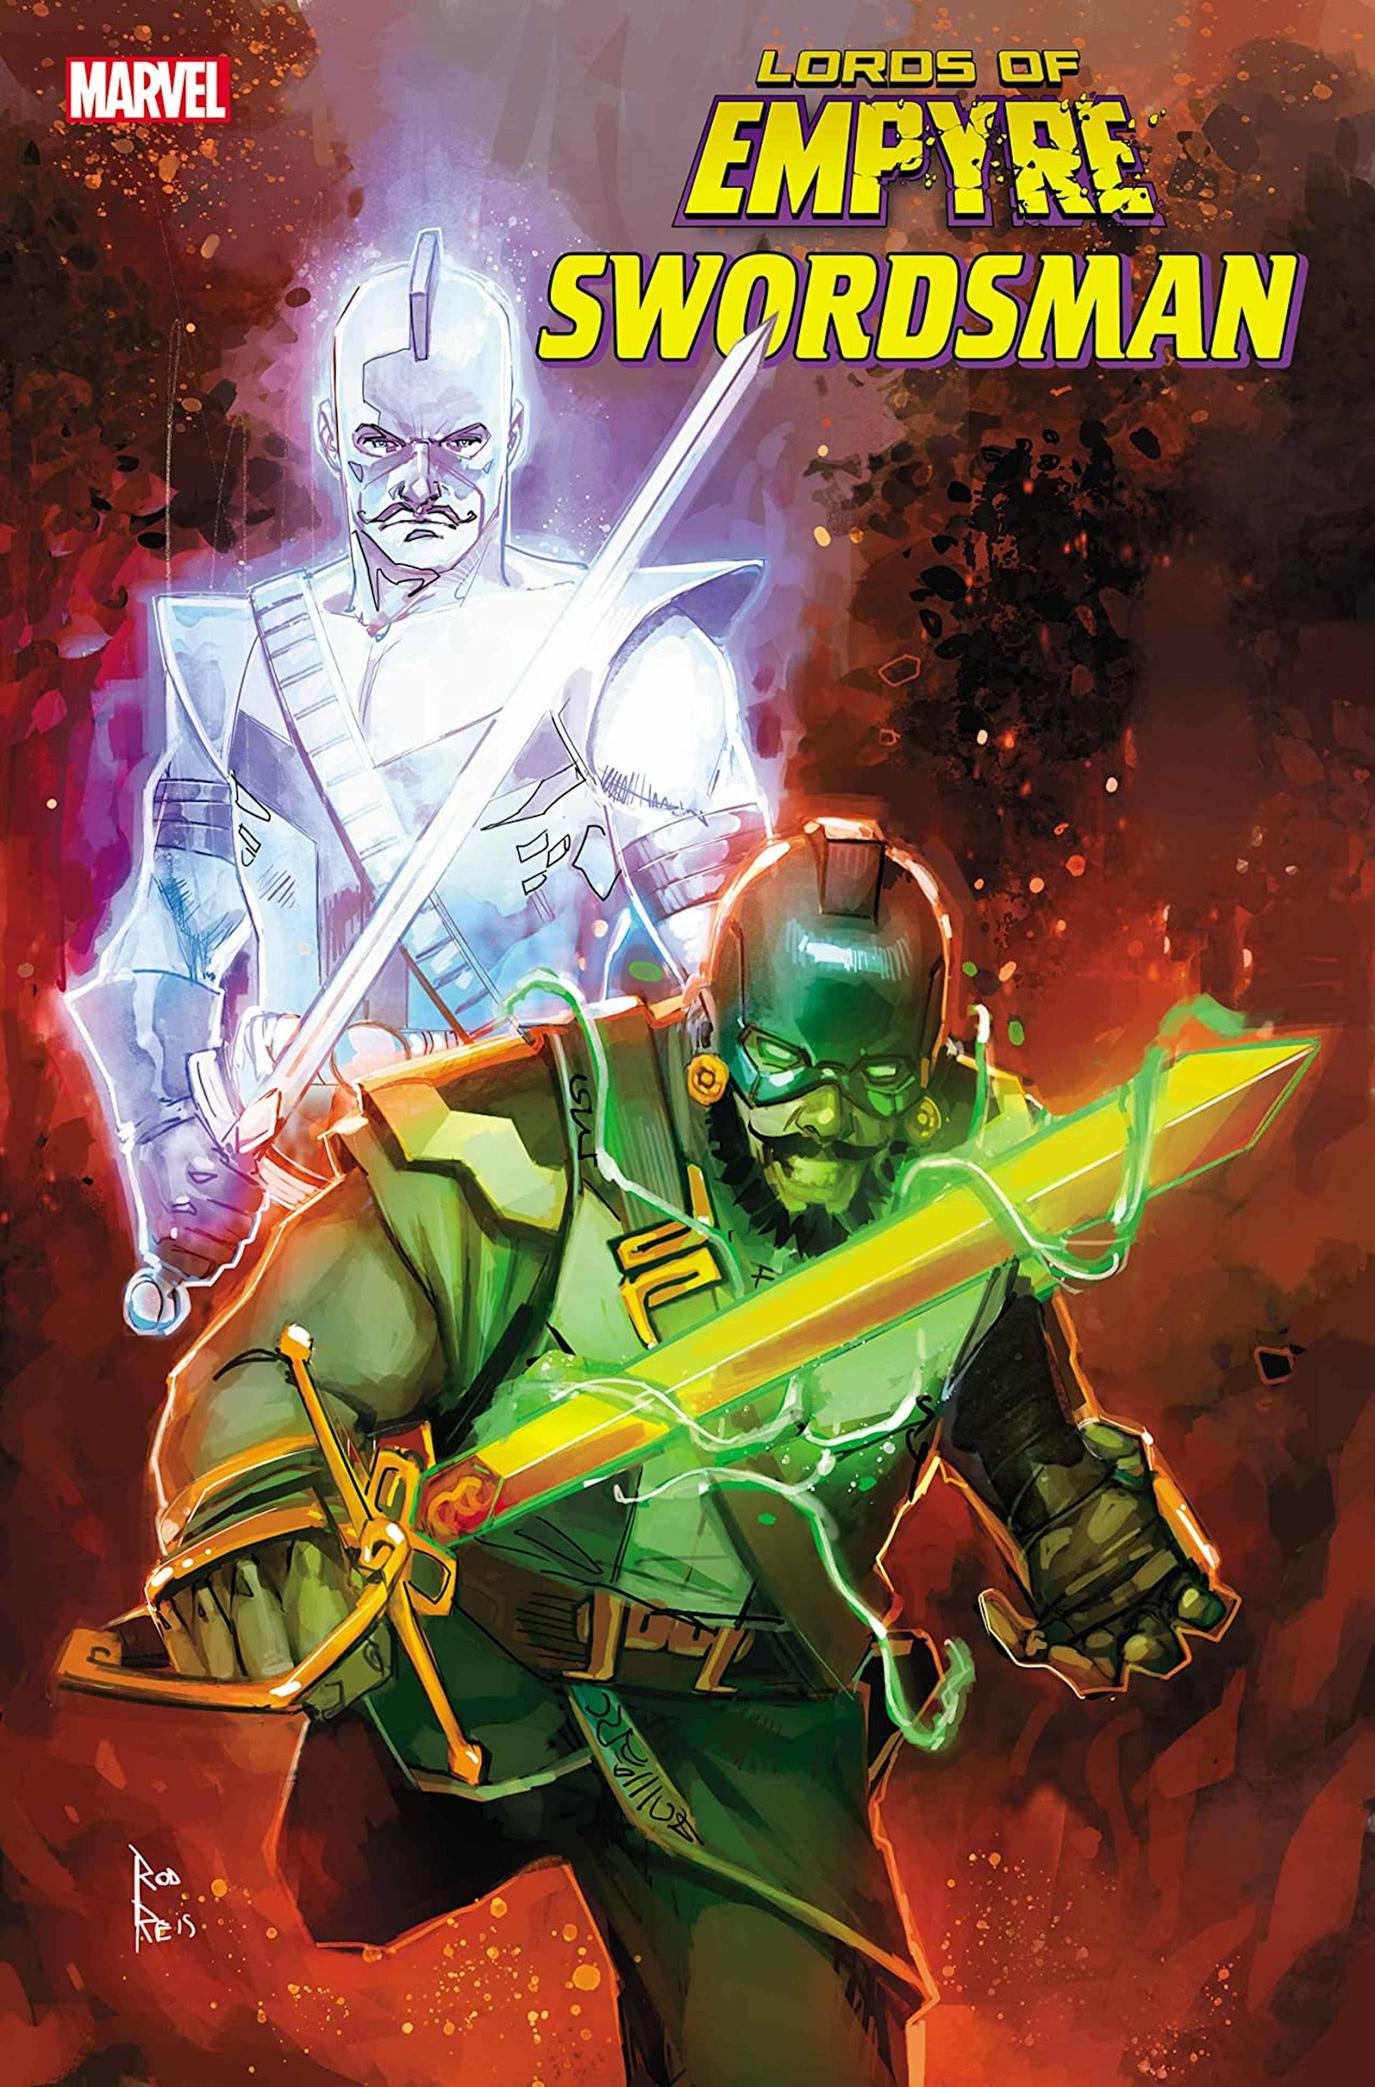 LORDS OF EMPYRE: SWORDSMAN #1 cover by Rod Reis